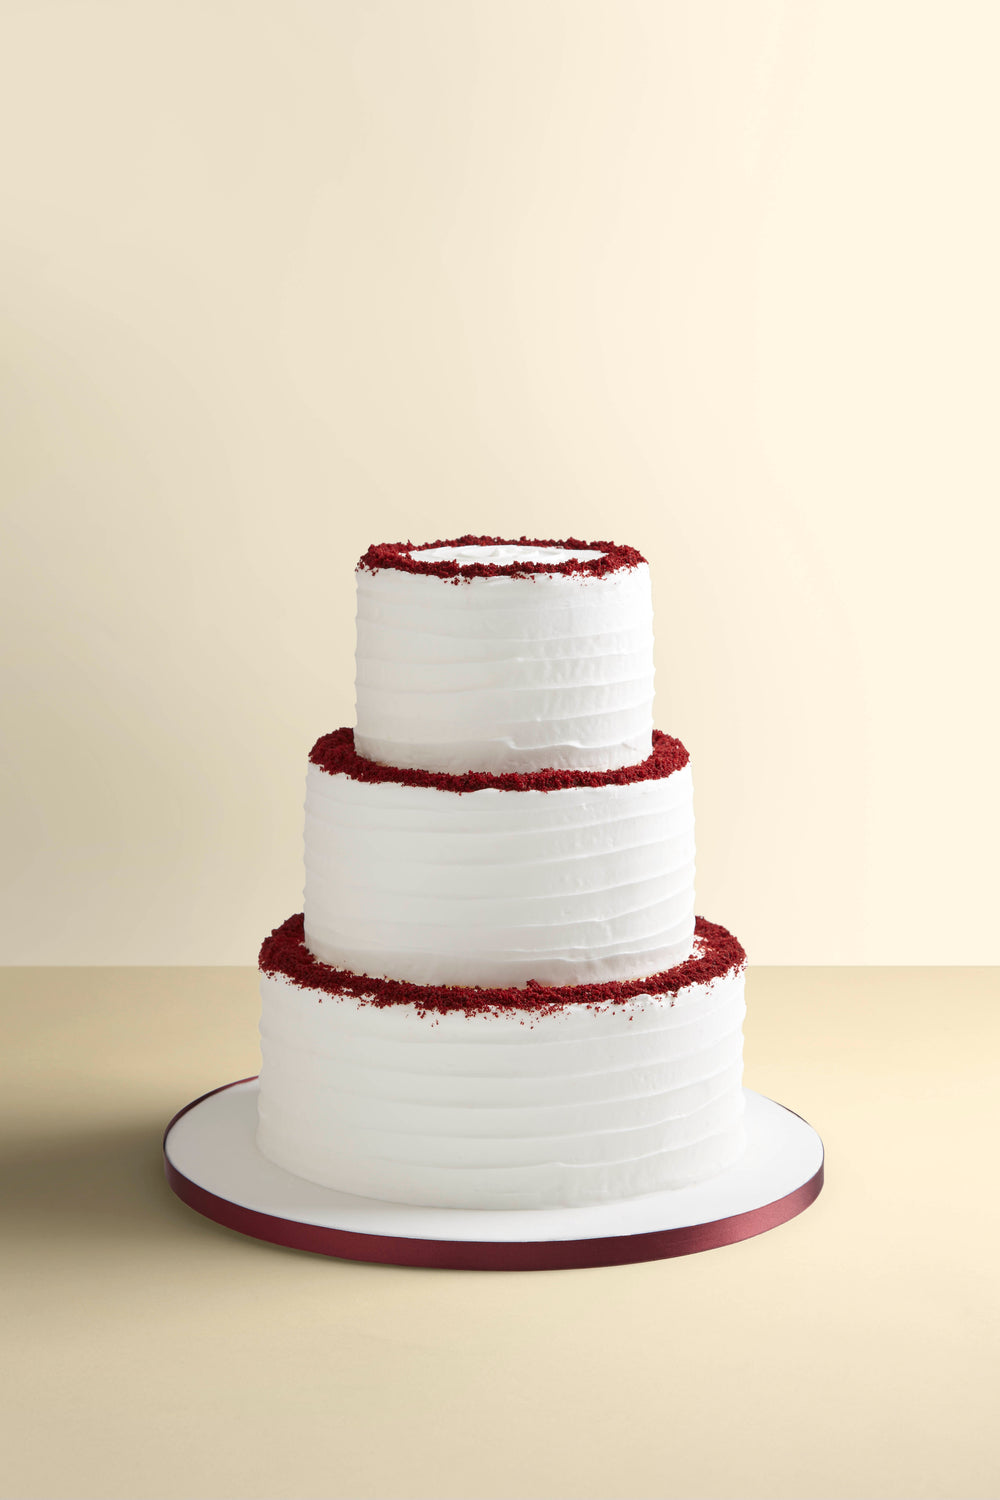 Freshly Baked Wedding Cakes To Order Online From The Hummingbird Bakery? We  Do!